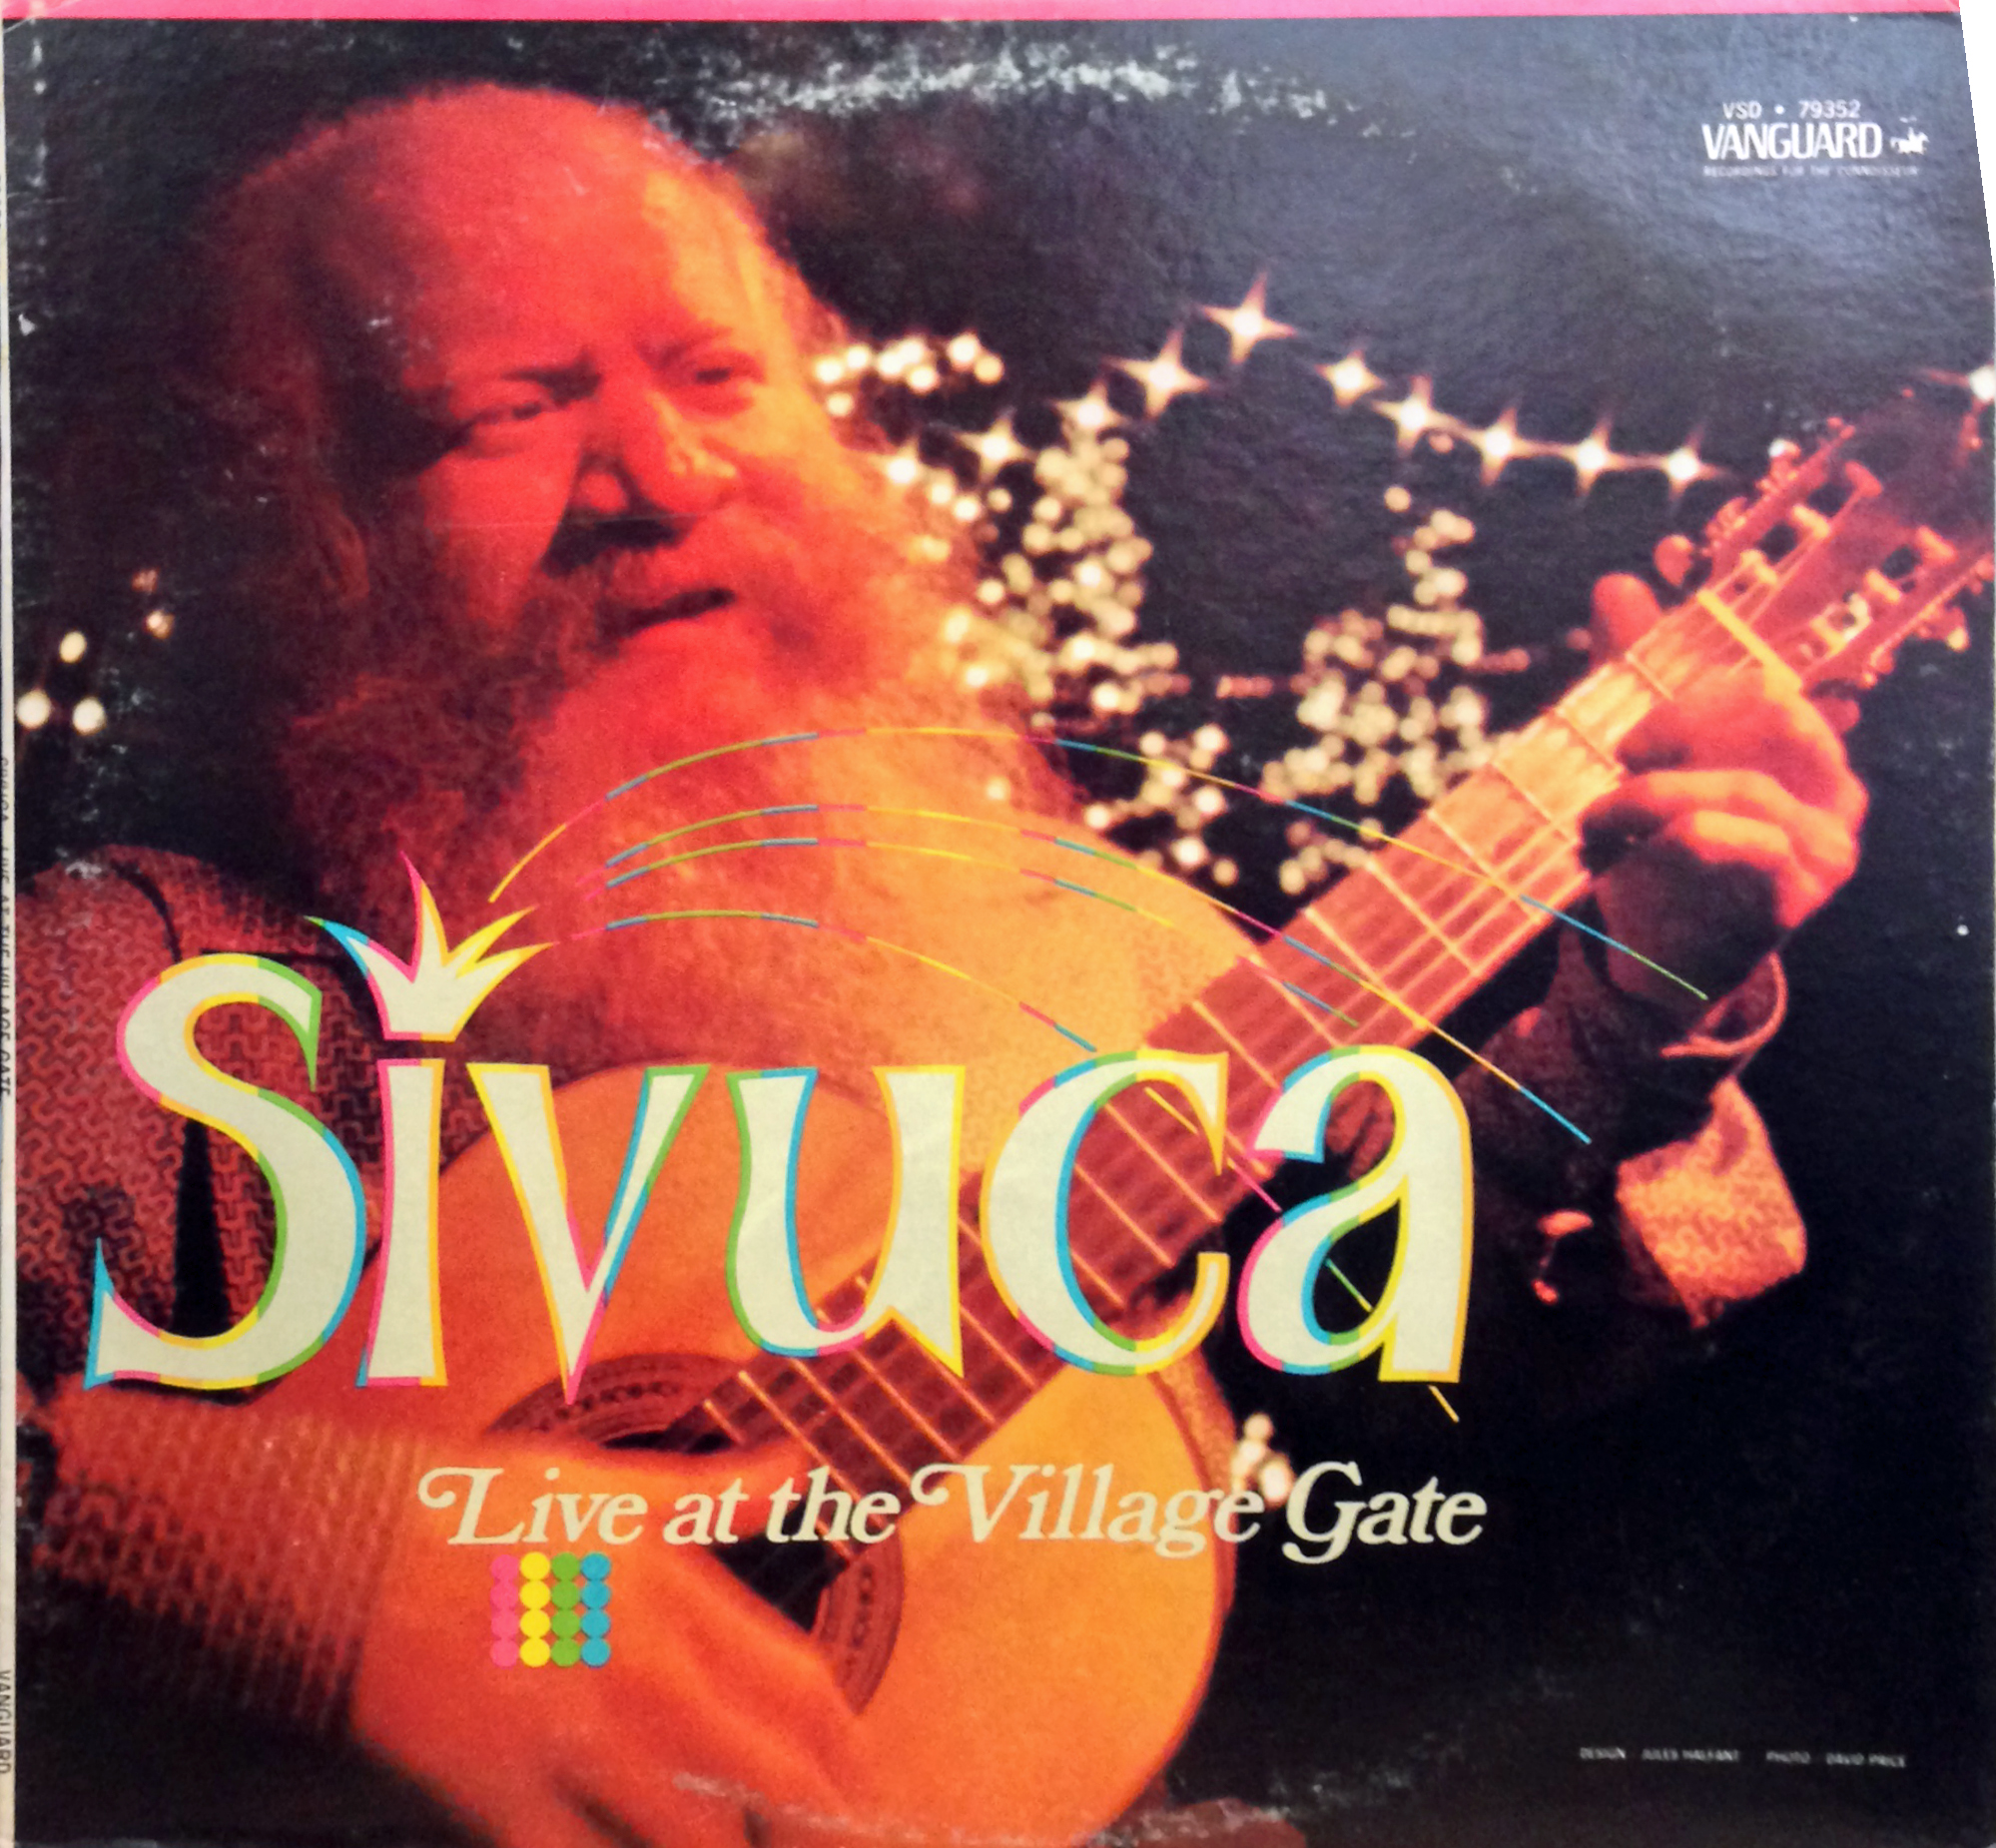 SIVUCA / LIVE AT THE VILLAGE GATE